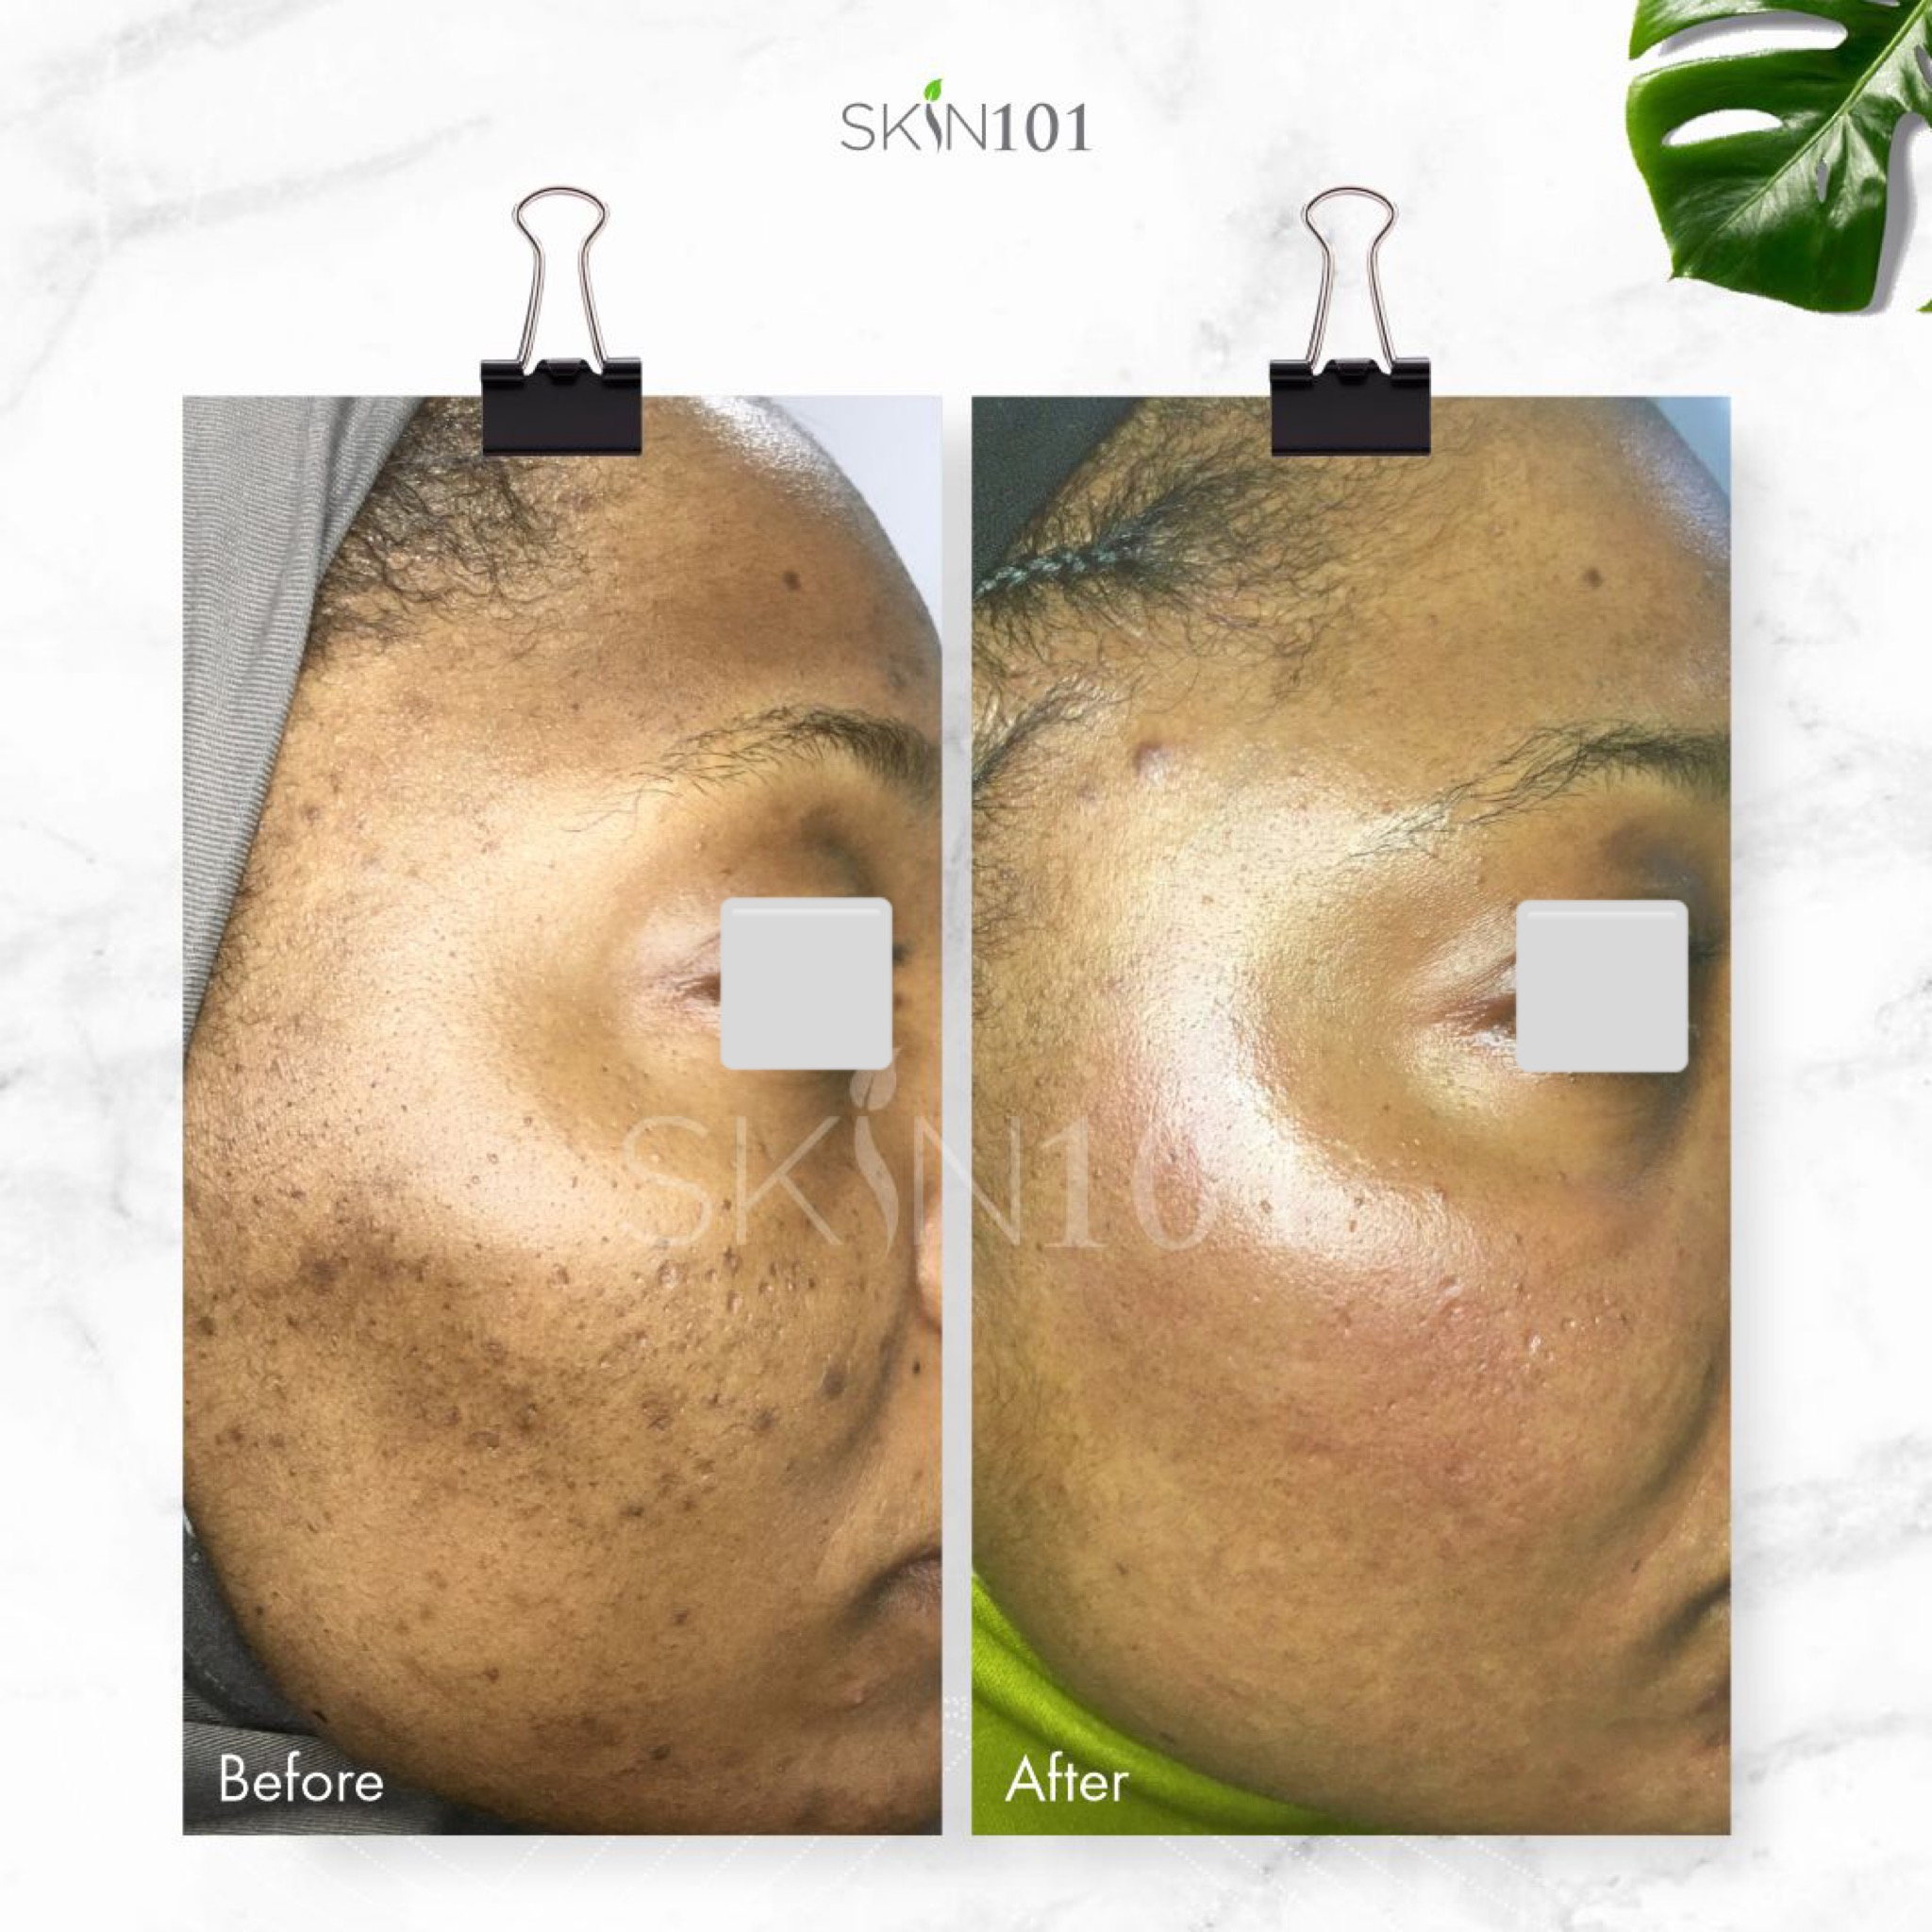 Post Inflammatory Hyperpigmentation PIH From Acne - Before And After